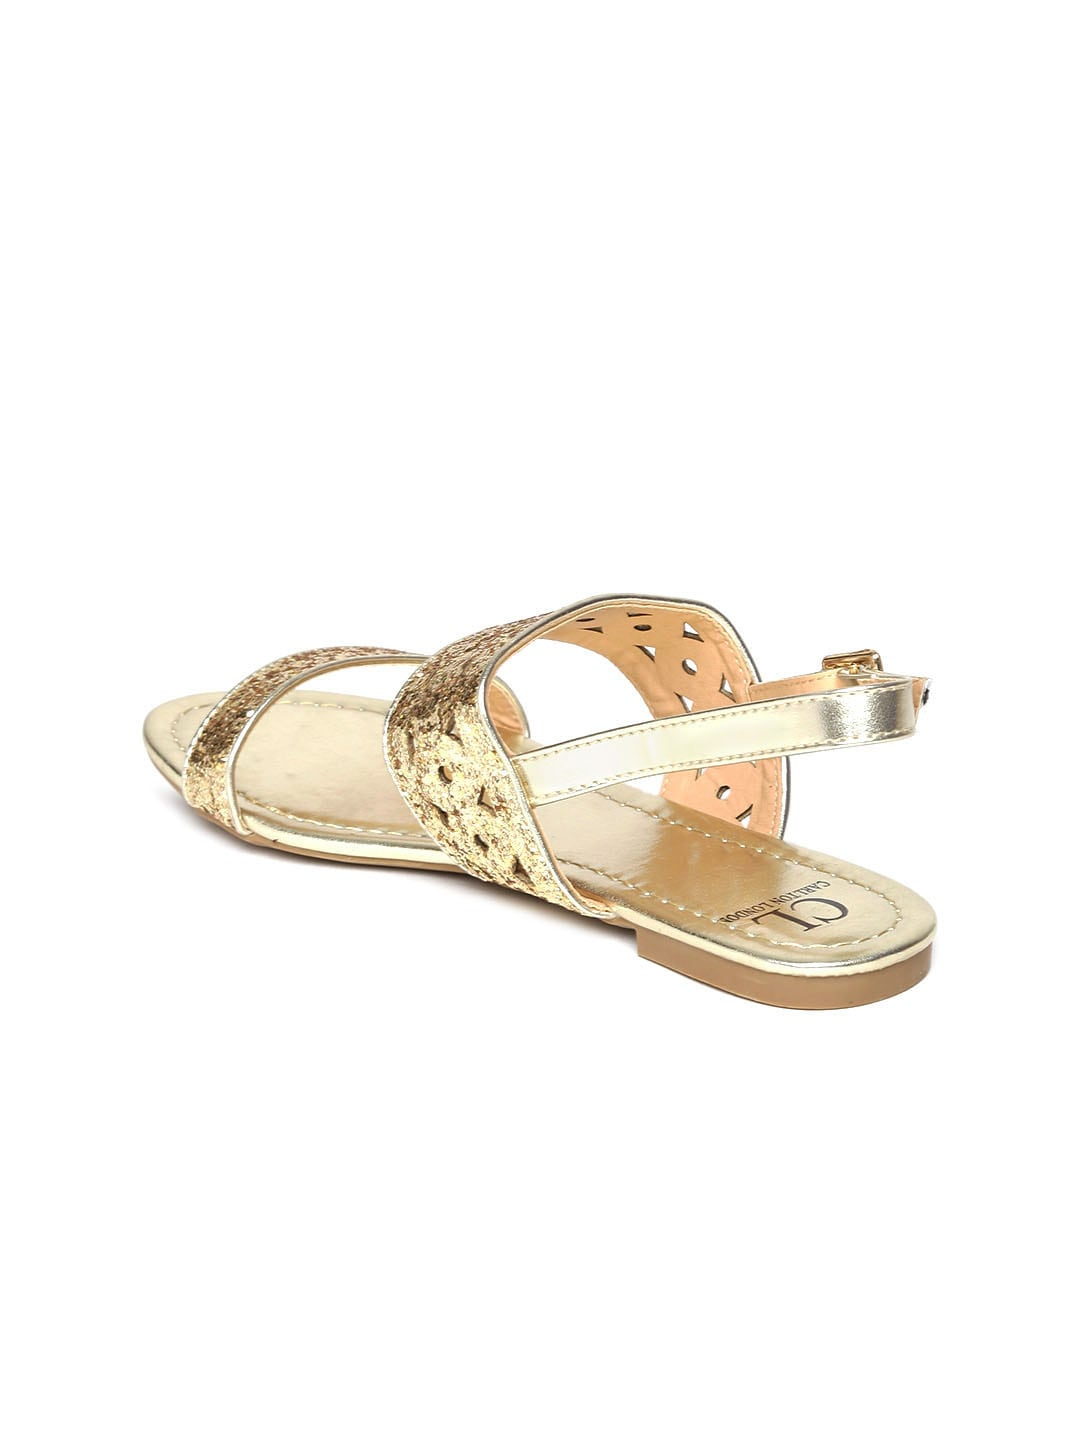 Carlton London Women Gold-Toned Shimmer Synthetic Open Toe Flats